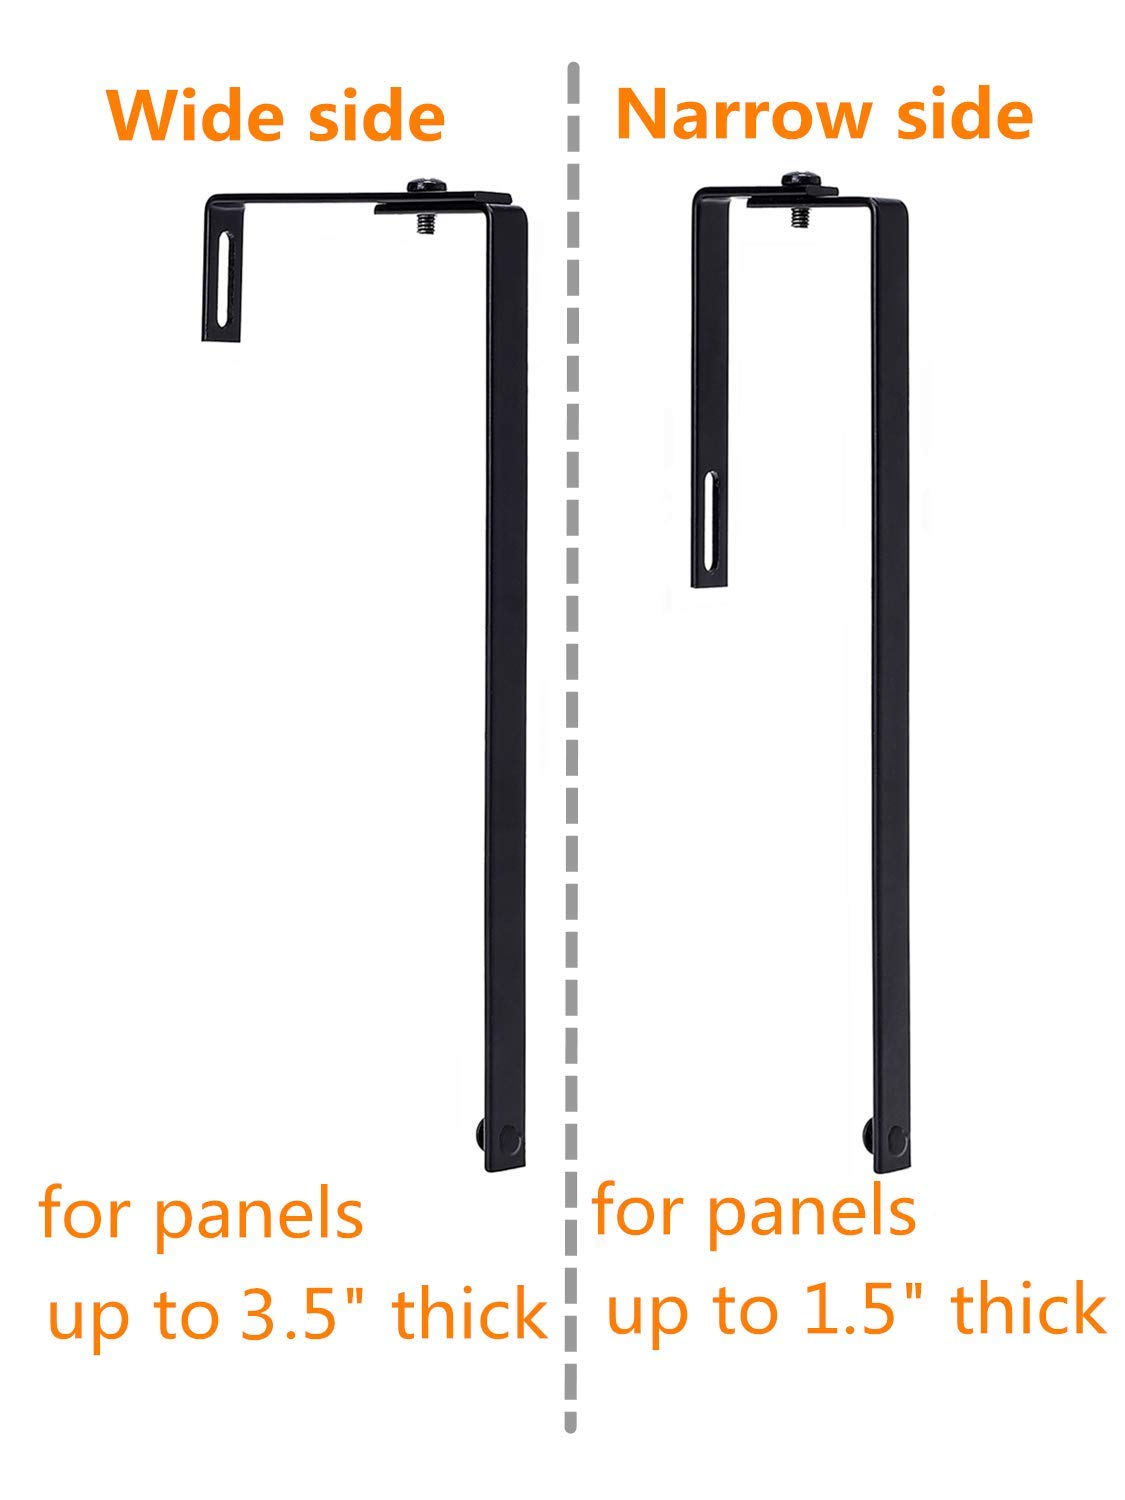 1 Pair Black Fits 1.5-3.5 Cube Wall Mount Delifox Adjustable Cubical Hangers Hooks for Panels